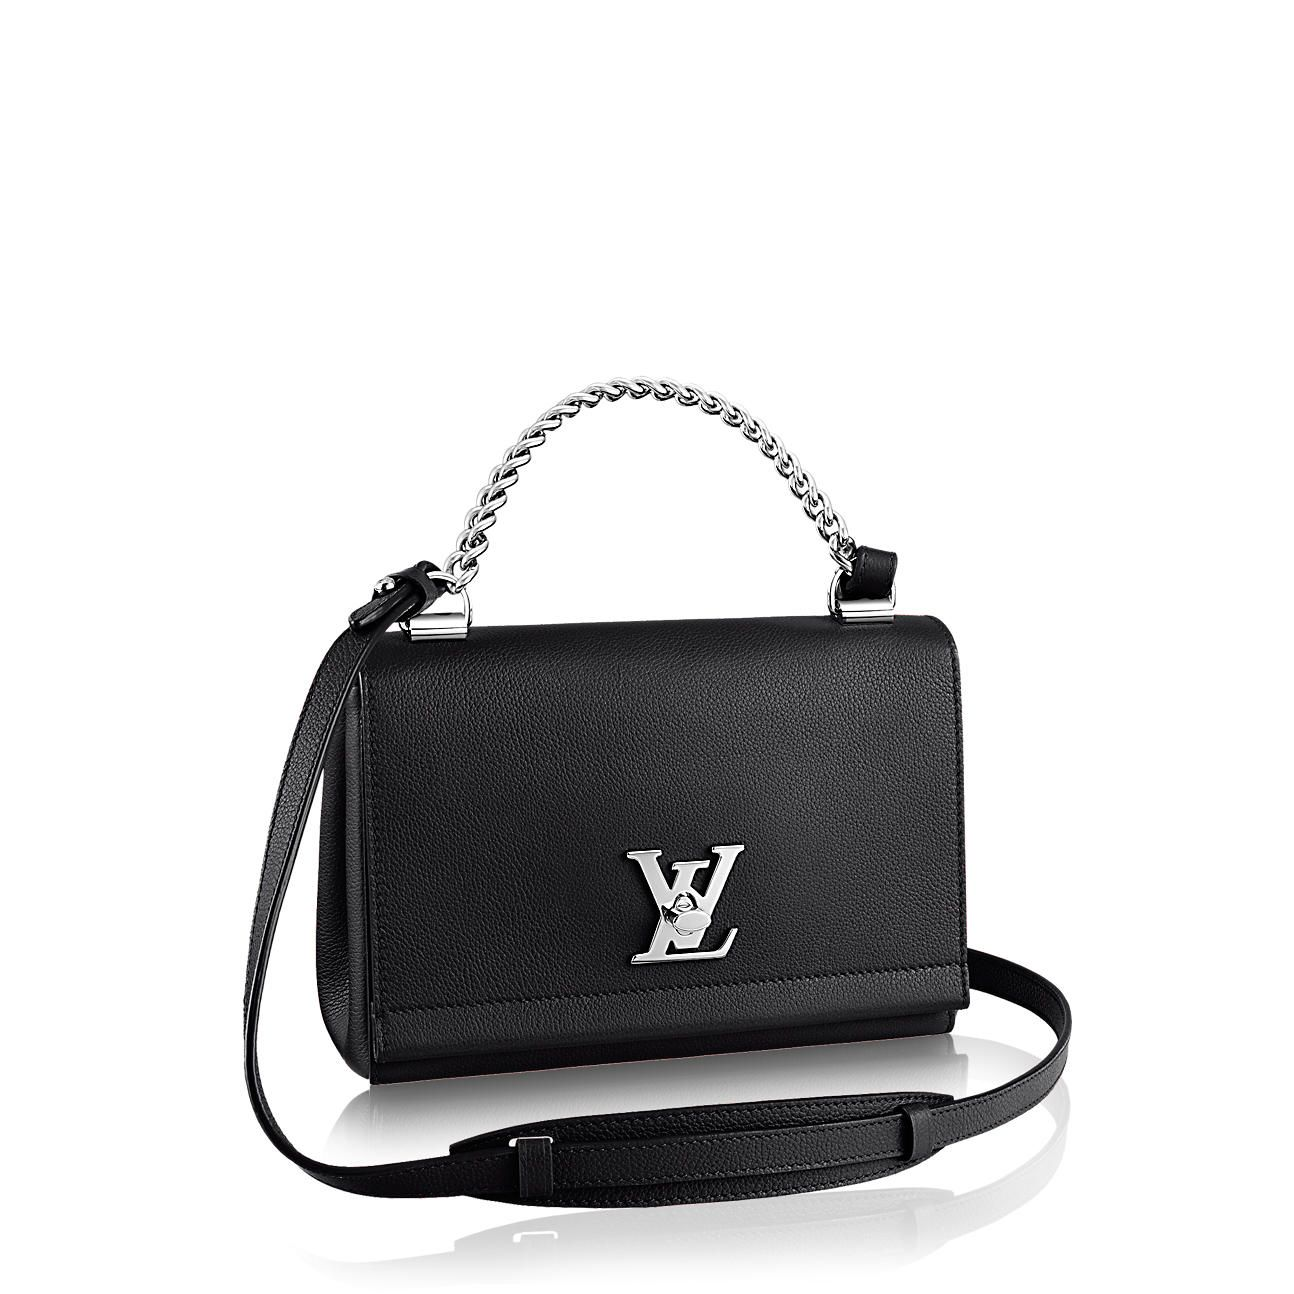 f8b05a7c5078 Discover Louis Vuitton Lockme II BB 2015 brings a fresh new reading of the  Lockme. Crafted in a natural soft calf leather with a supple hand, the bag s  ...